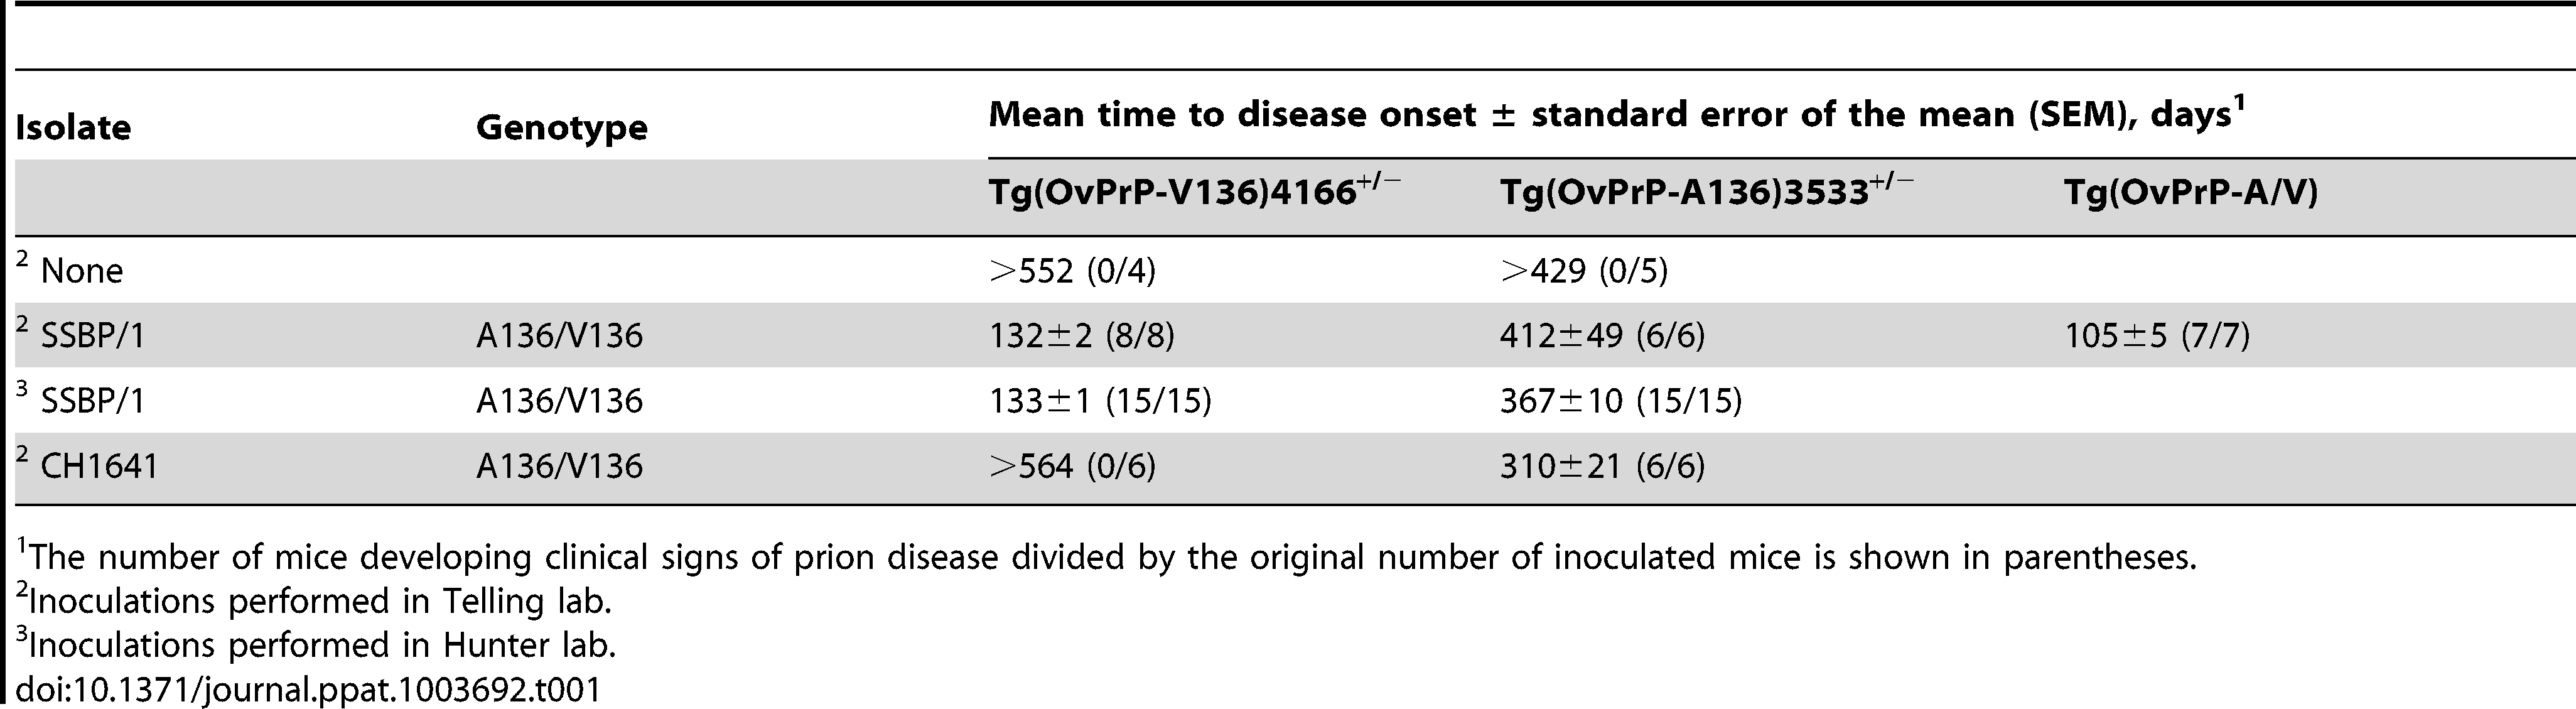 Prion disease in transgenic mice expressing different ovine PrP scrapie susceptibility alleles.